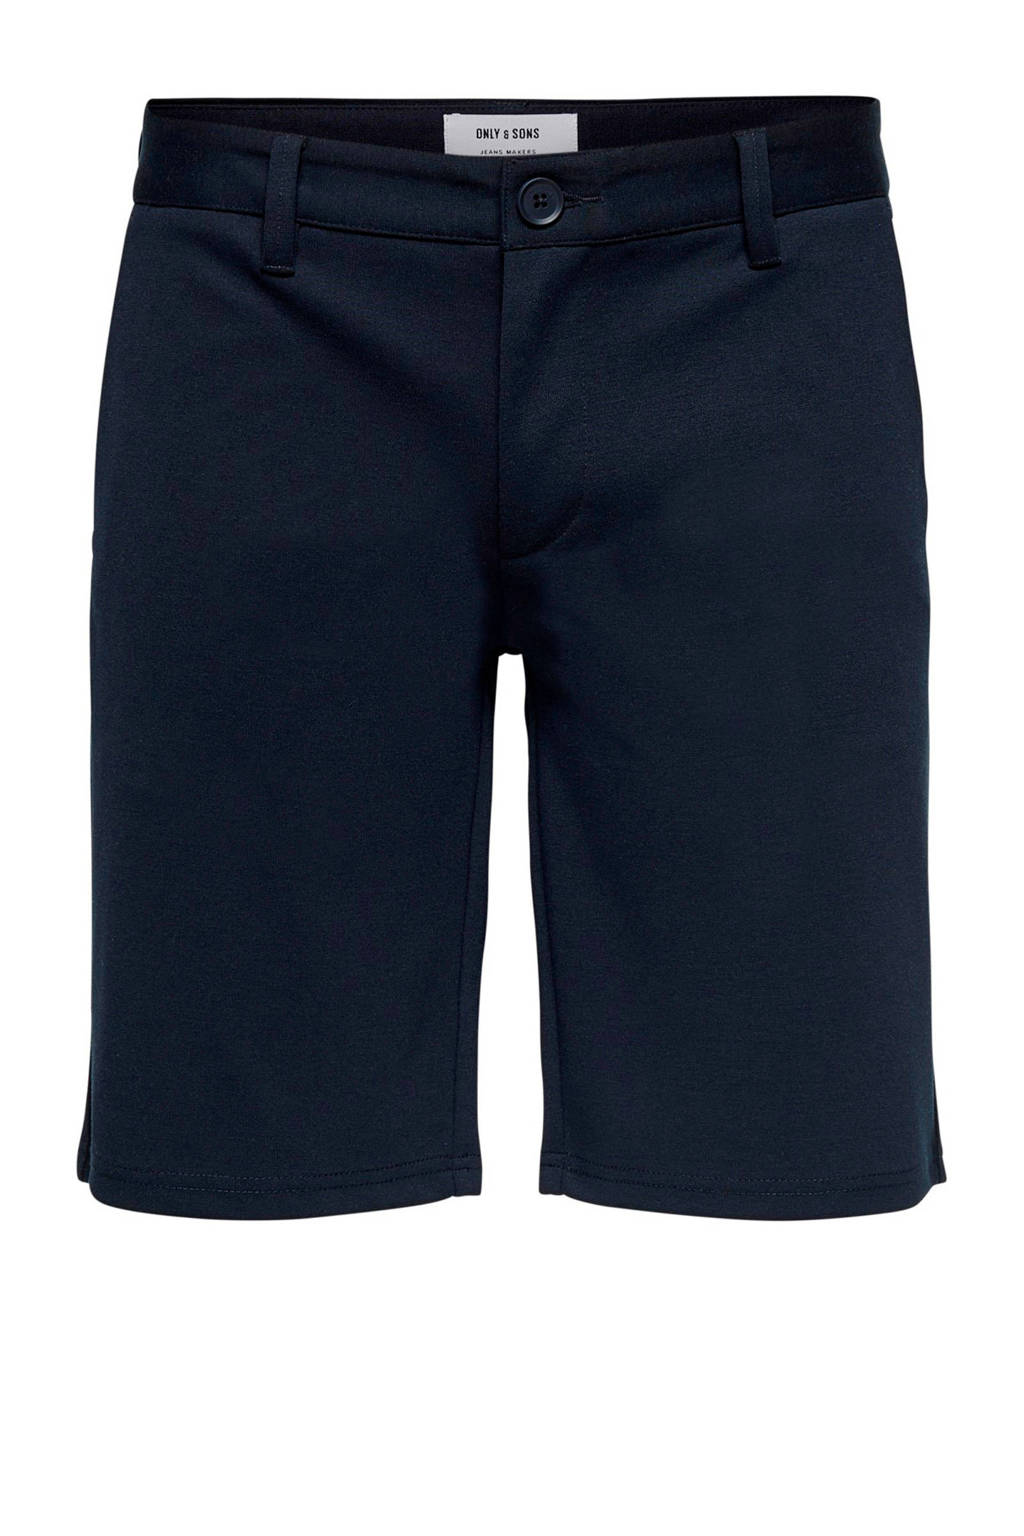 Only & Sons sweat bermuda, Donkerblauw